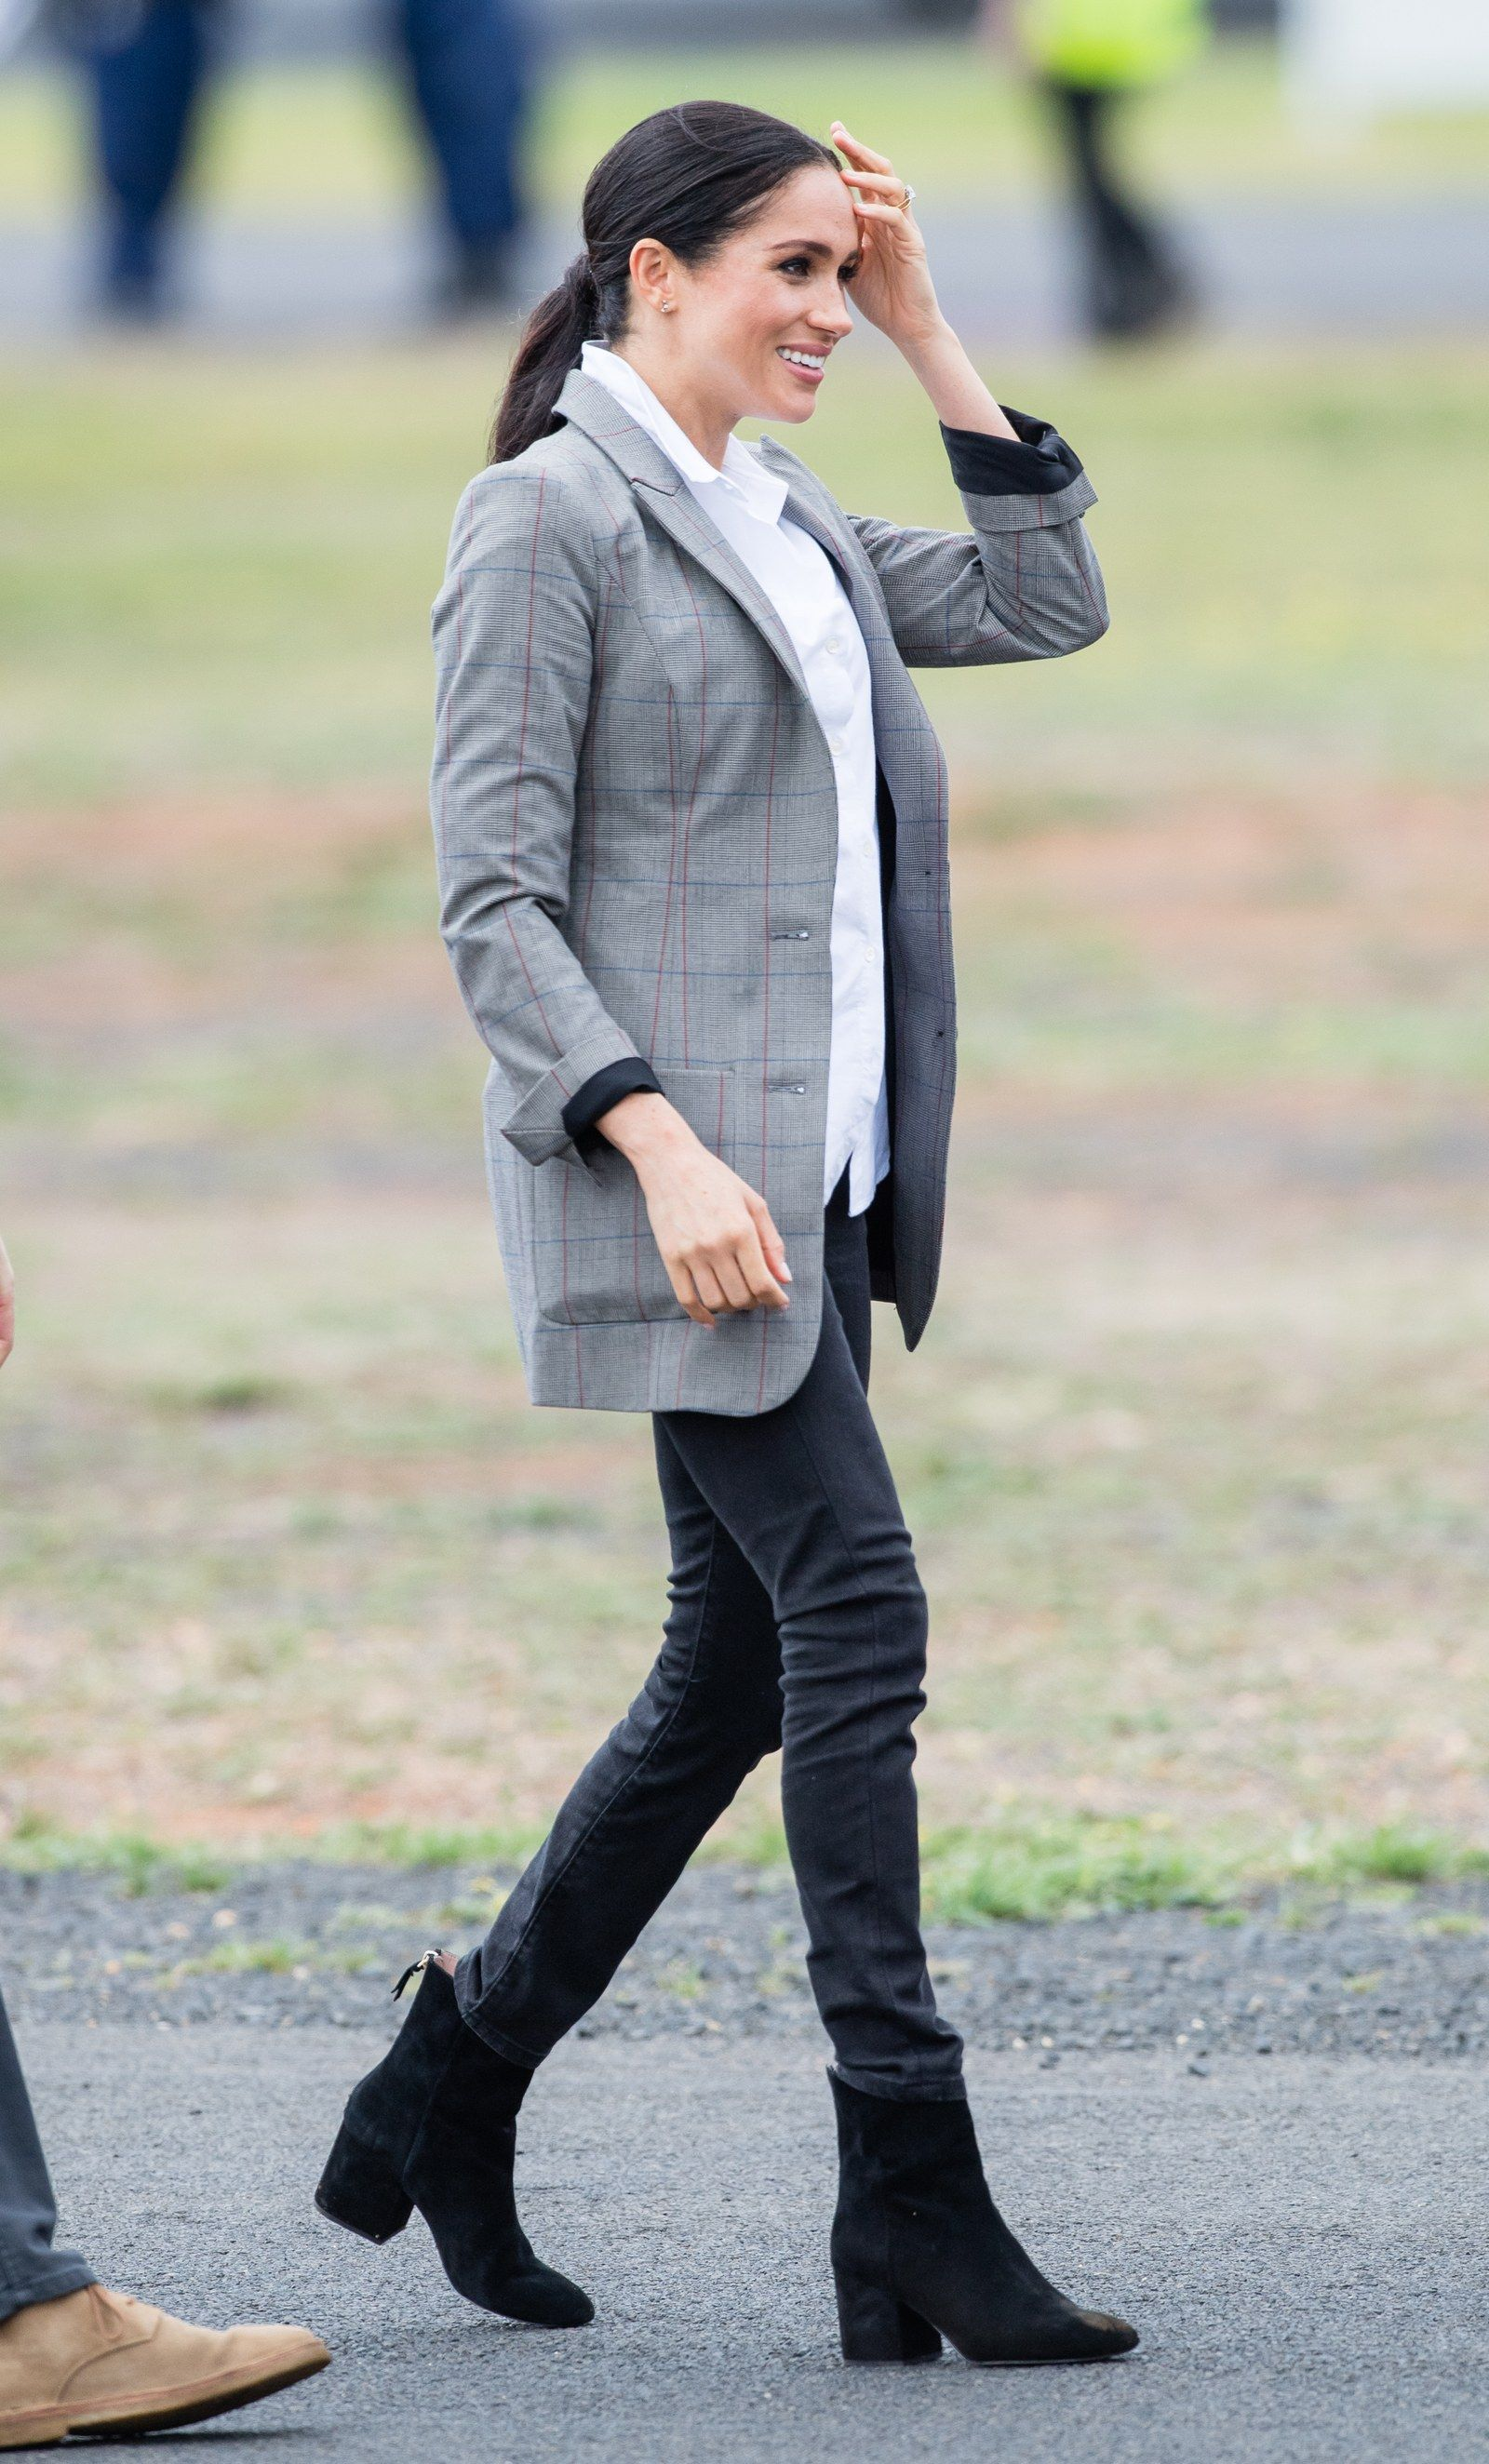 ffd46a8a3c Meghan Markle Best Fall Outfits  How To Get Her Look - Check it out on  Glamour.com